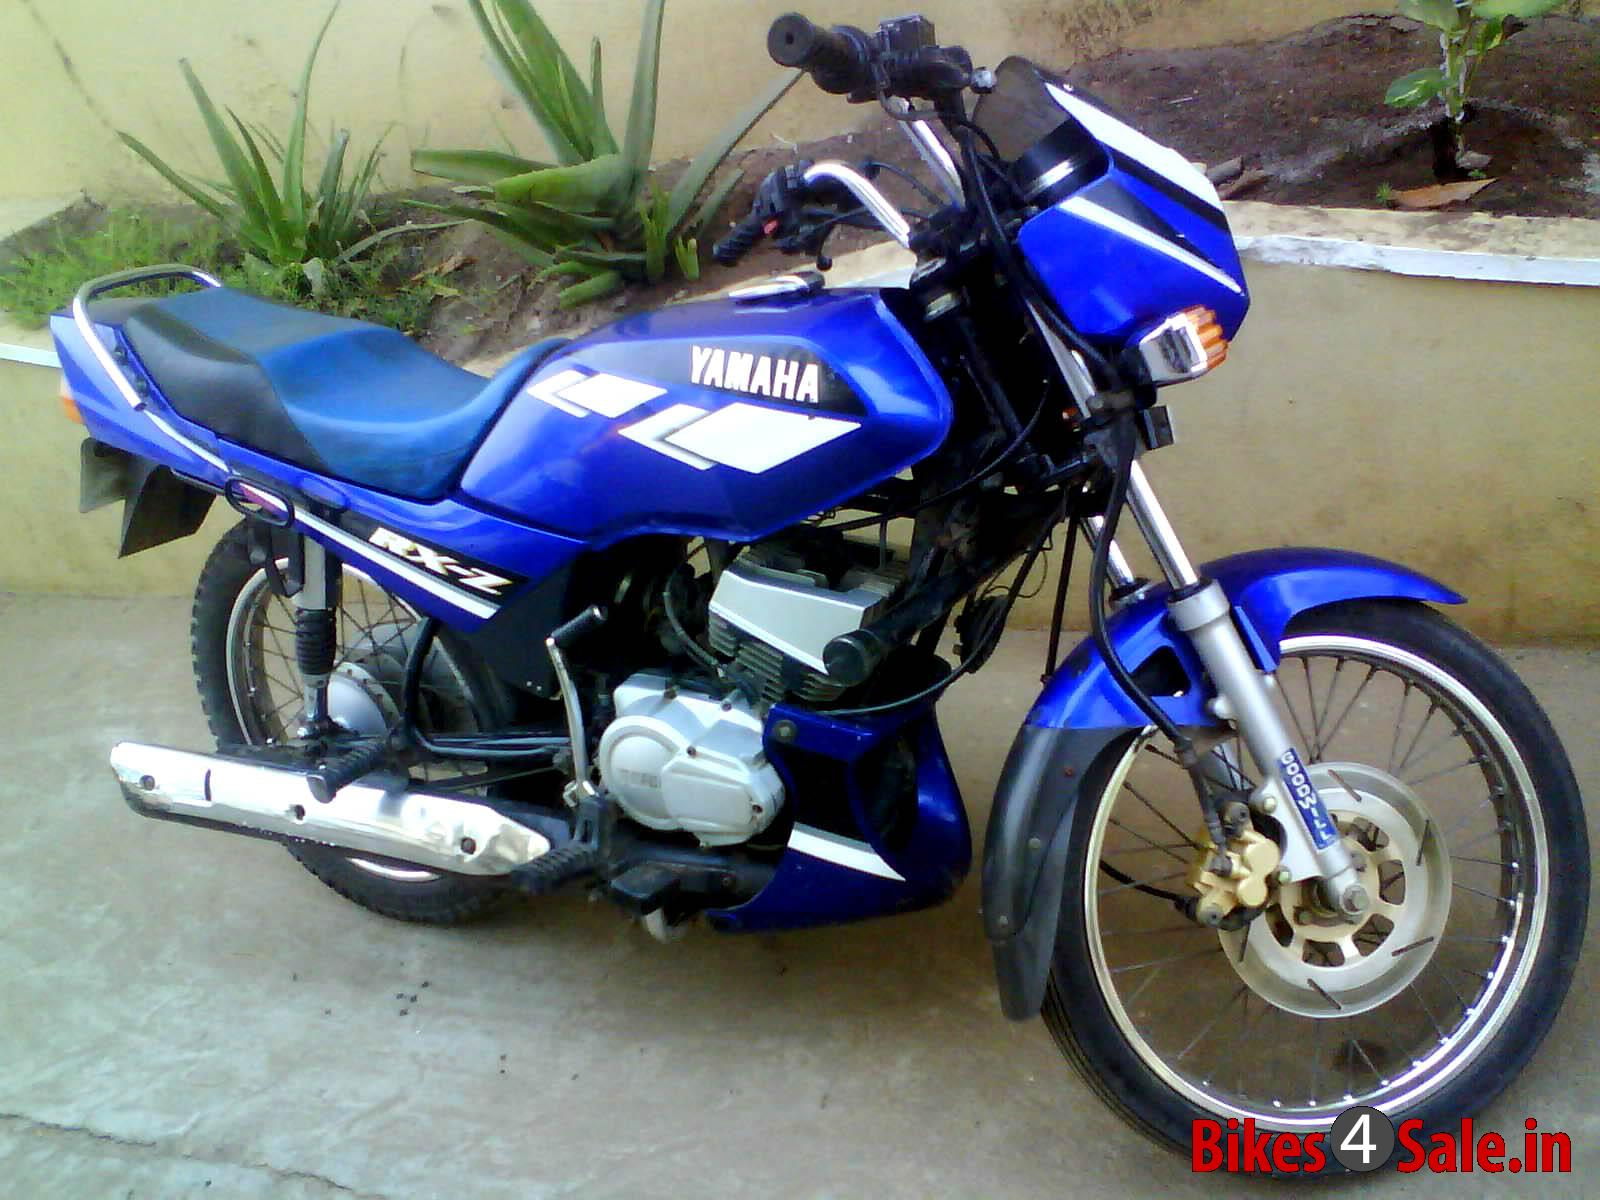 Yamaha rxz photo - 3